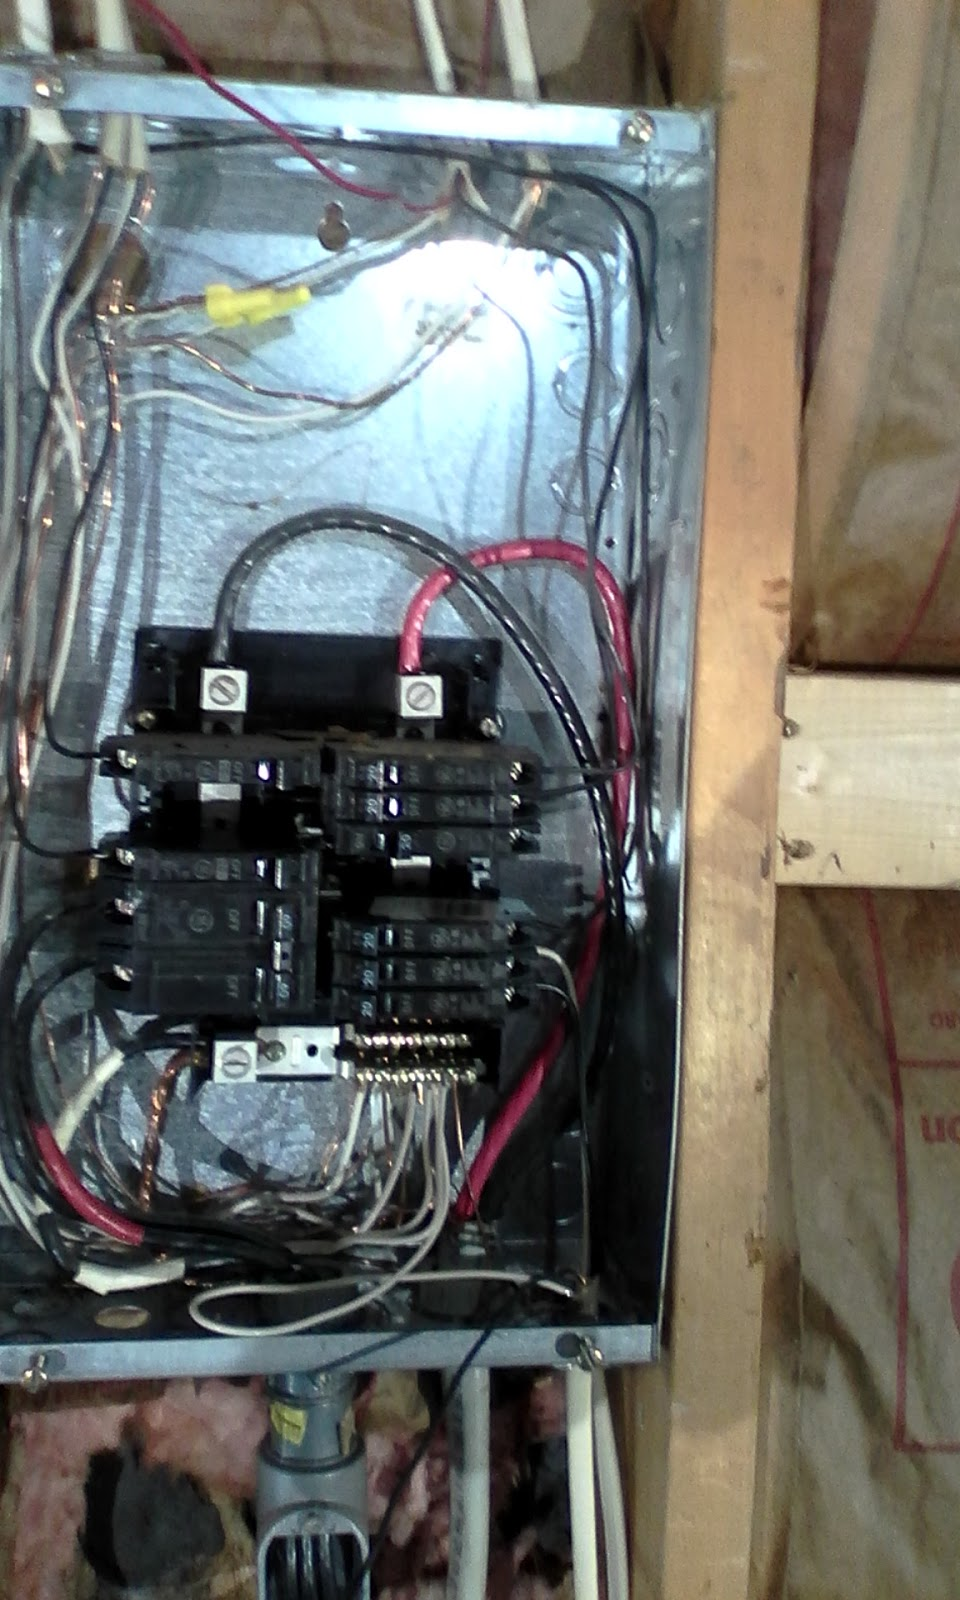 Pure Sinewave Inverter Battery Bank Plc Microgrid Electrical Energy Shop Square D Homeline 40amp 2pole Circuit Breaker At Lowescom Hold On 1 More Subpanel Was Discovered In The Attached Garage Feeding Power To That Area For Lighting Inside And Out Outlets Switching As Well